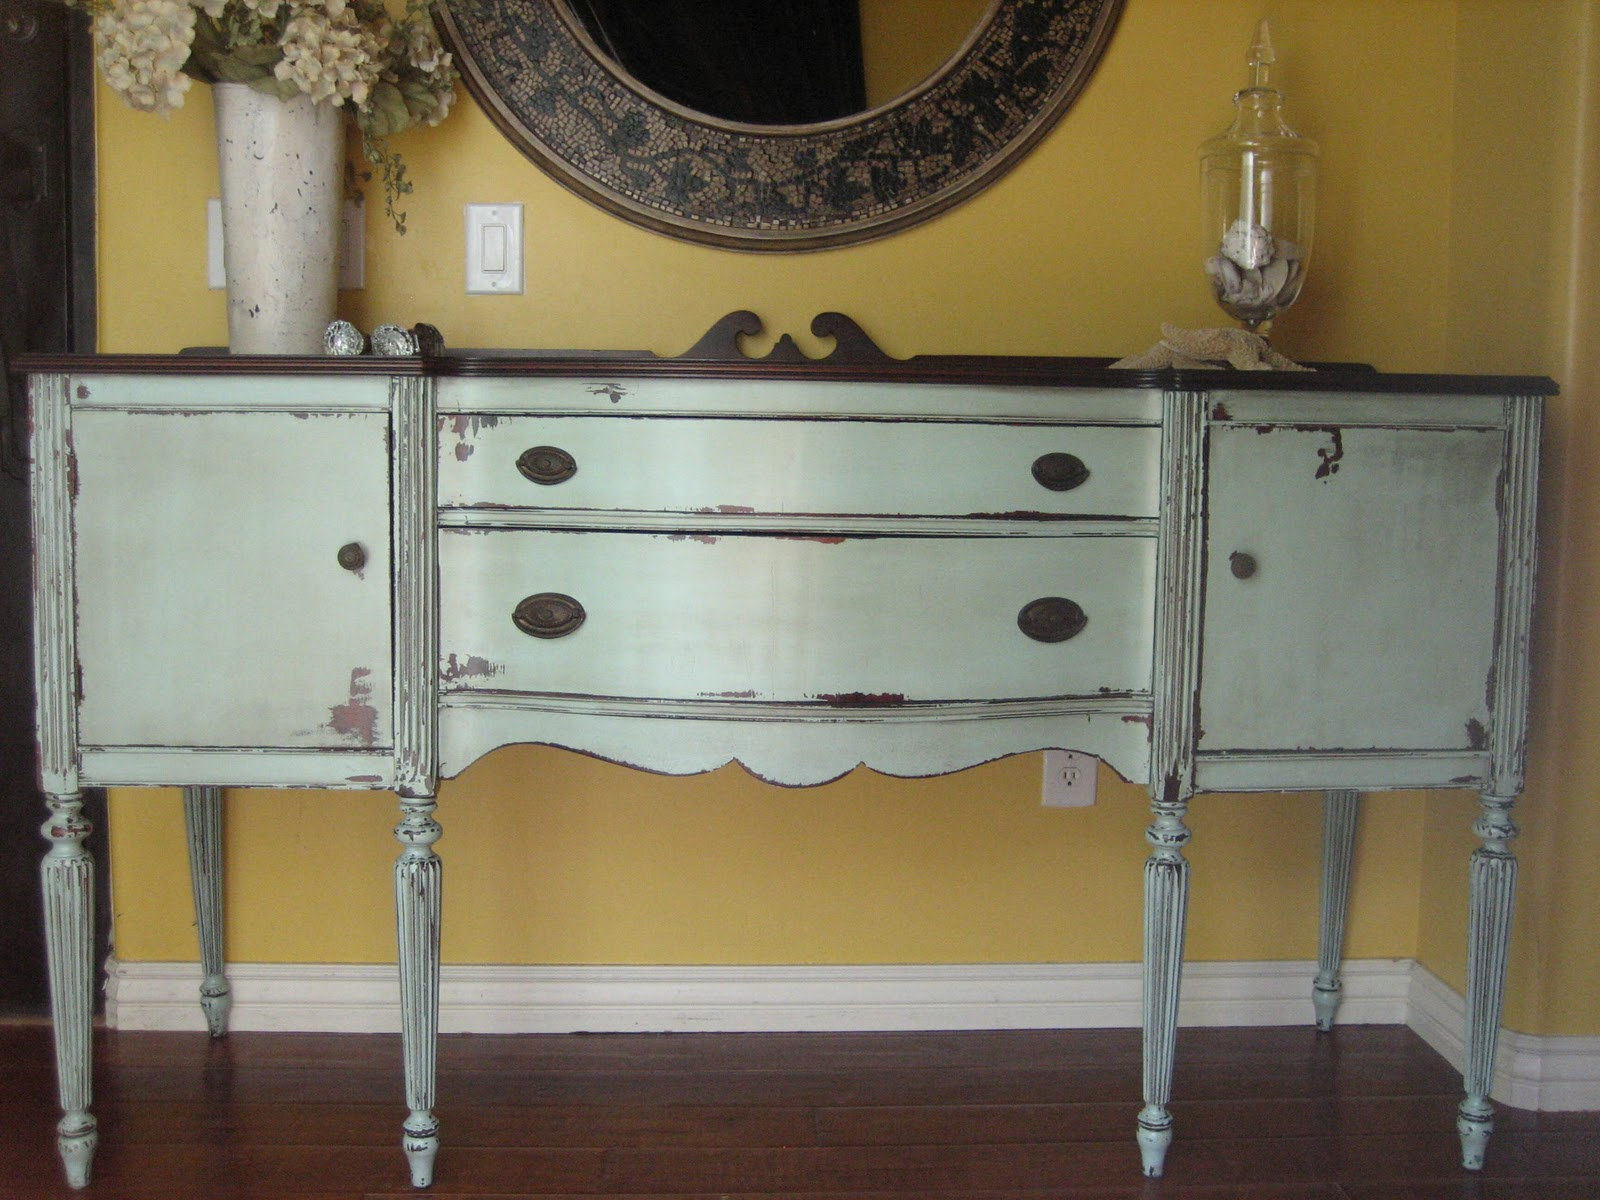 Painted buffet table furniture - Painted Buffet Table Furniture